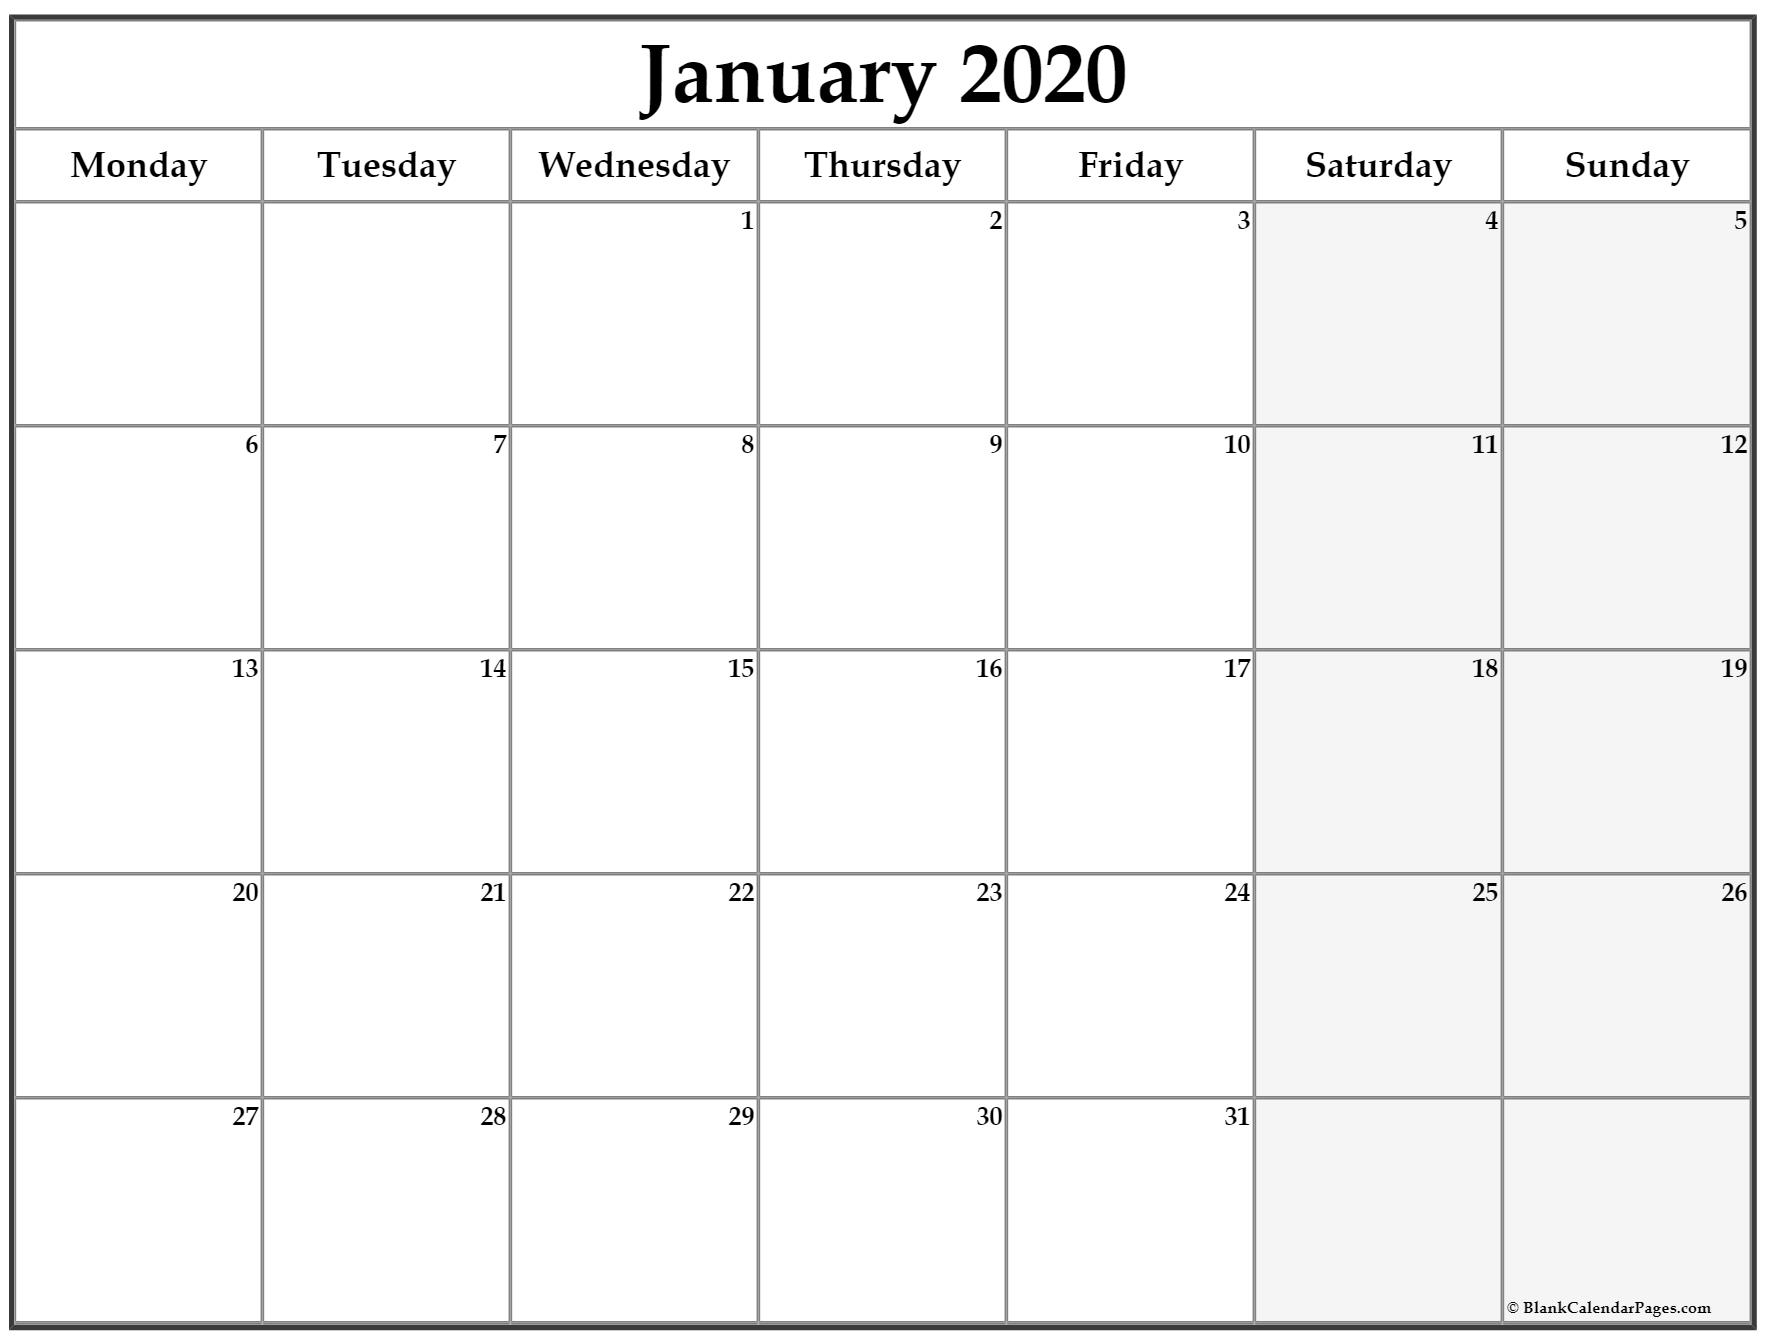 January 2020 Monday Calendar | Monday To Sunday in Calendar Monday Through Friday